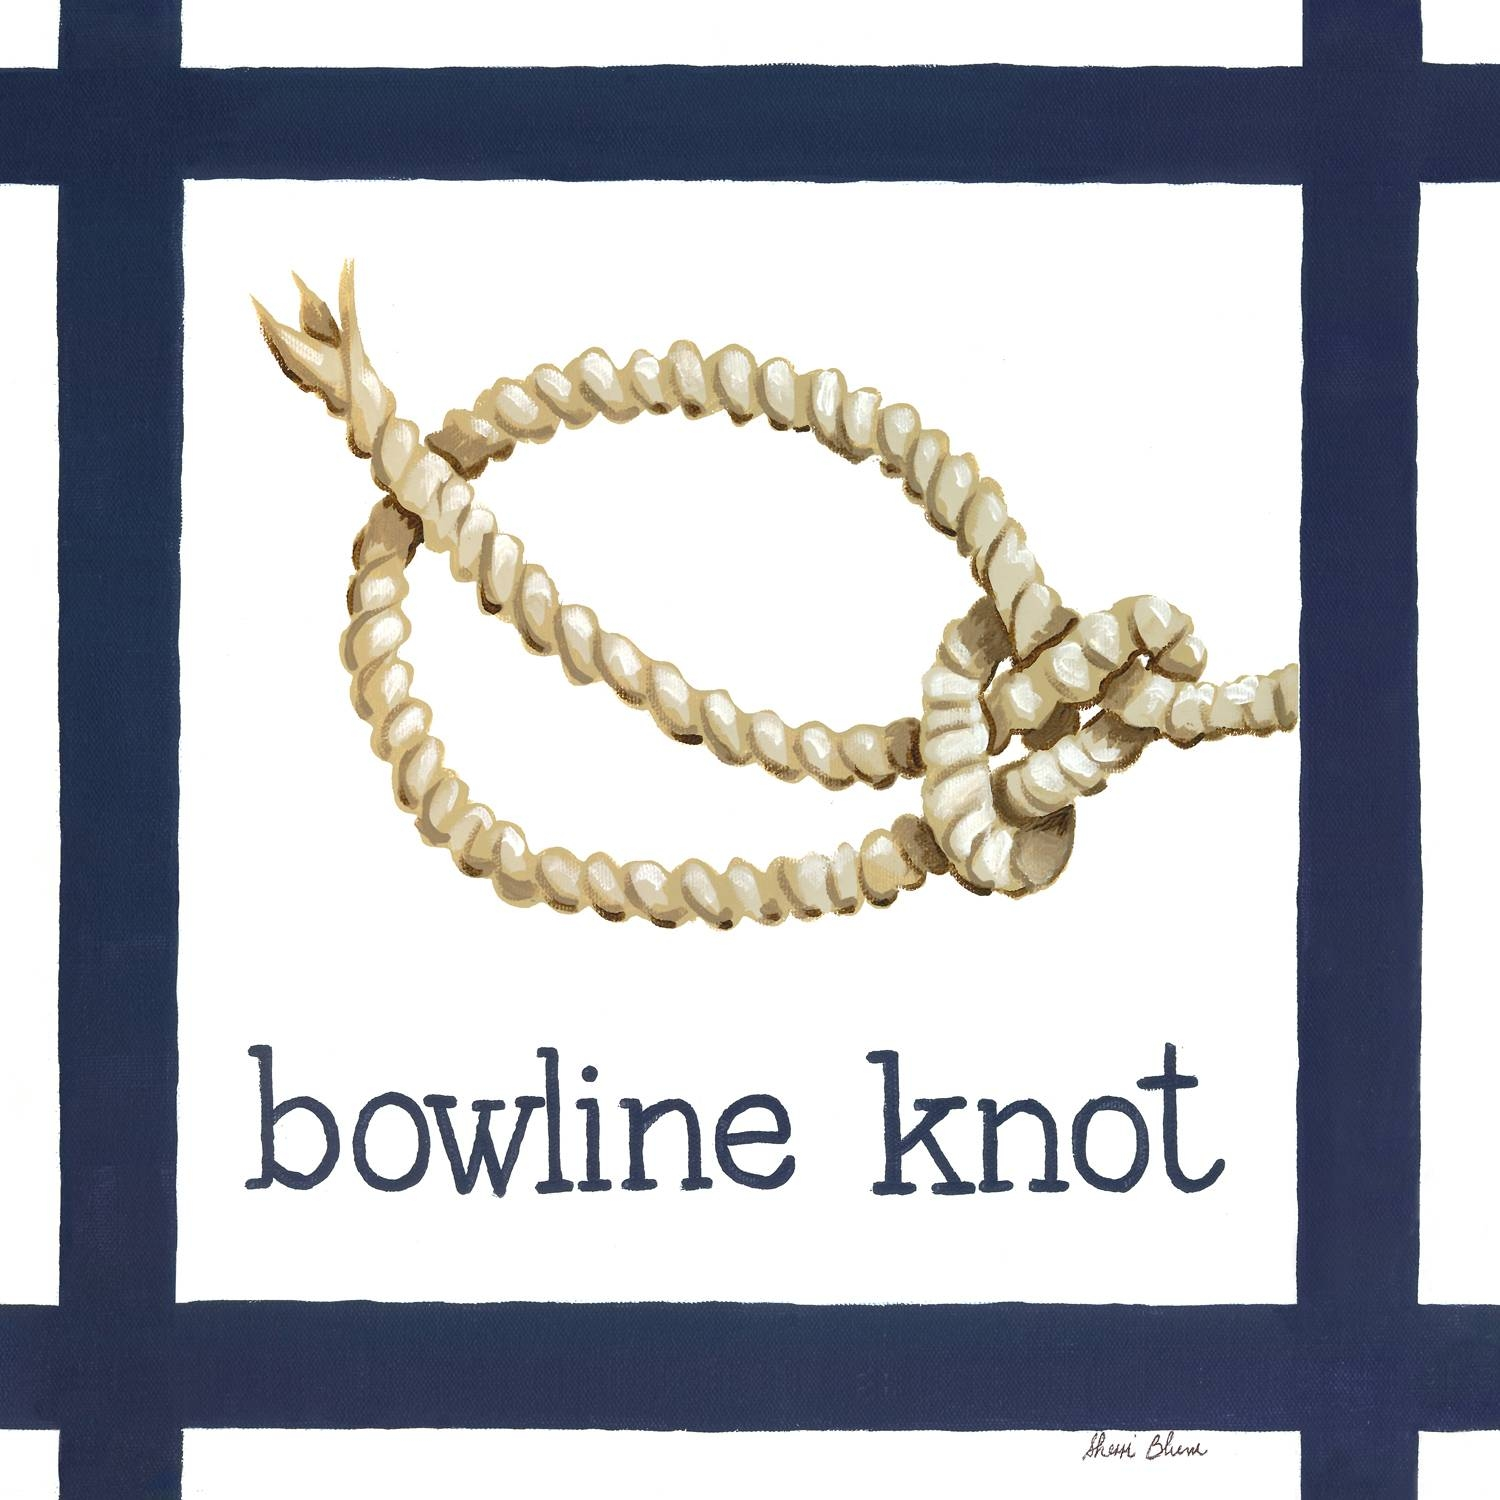 Nautical Nursery Decor, Nautical Knot Bowline Canvas Wall Art For Kids Regarding Best And Newest Nautical Canvas Wall Art (View 13 of 20)